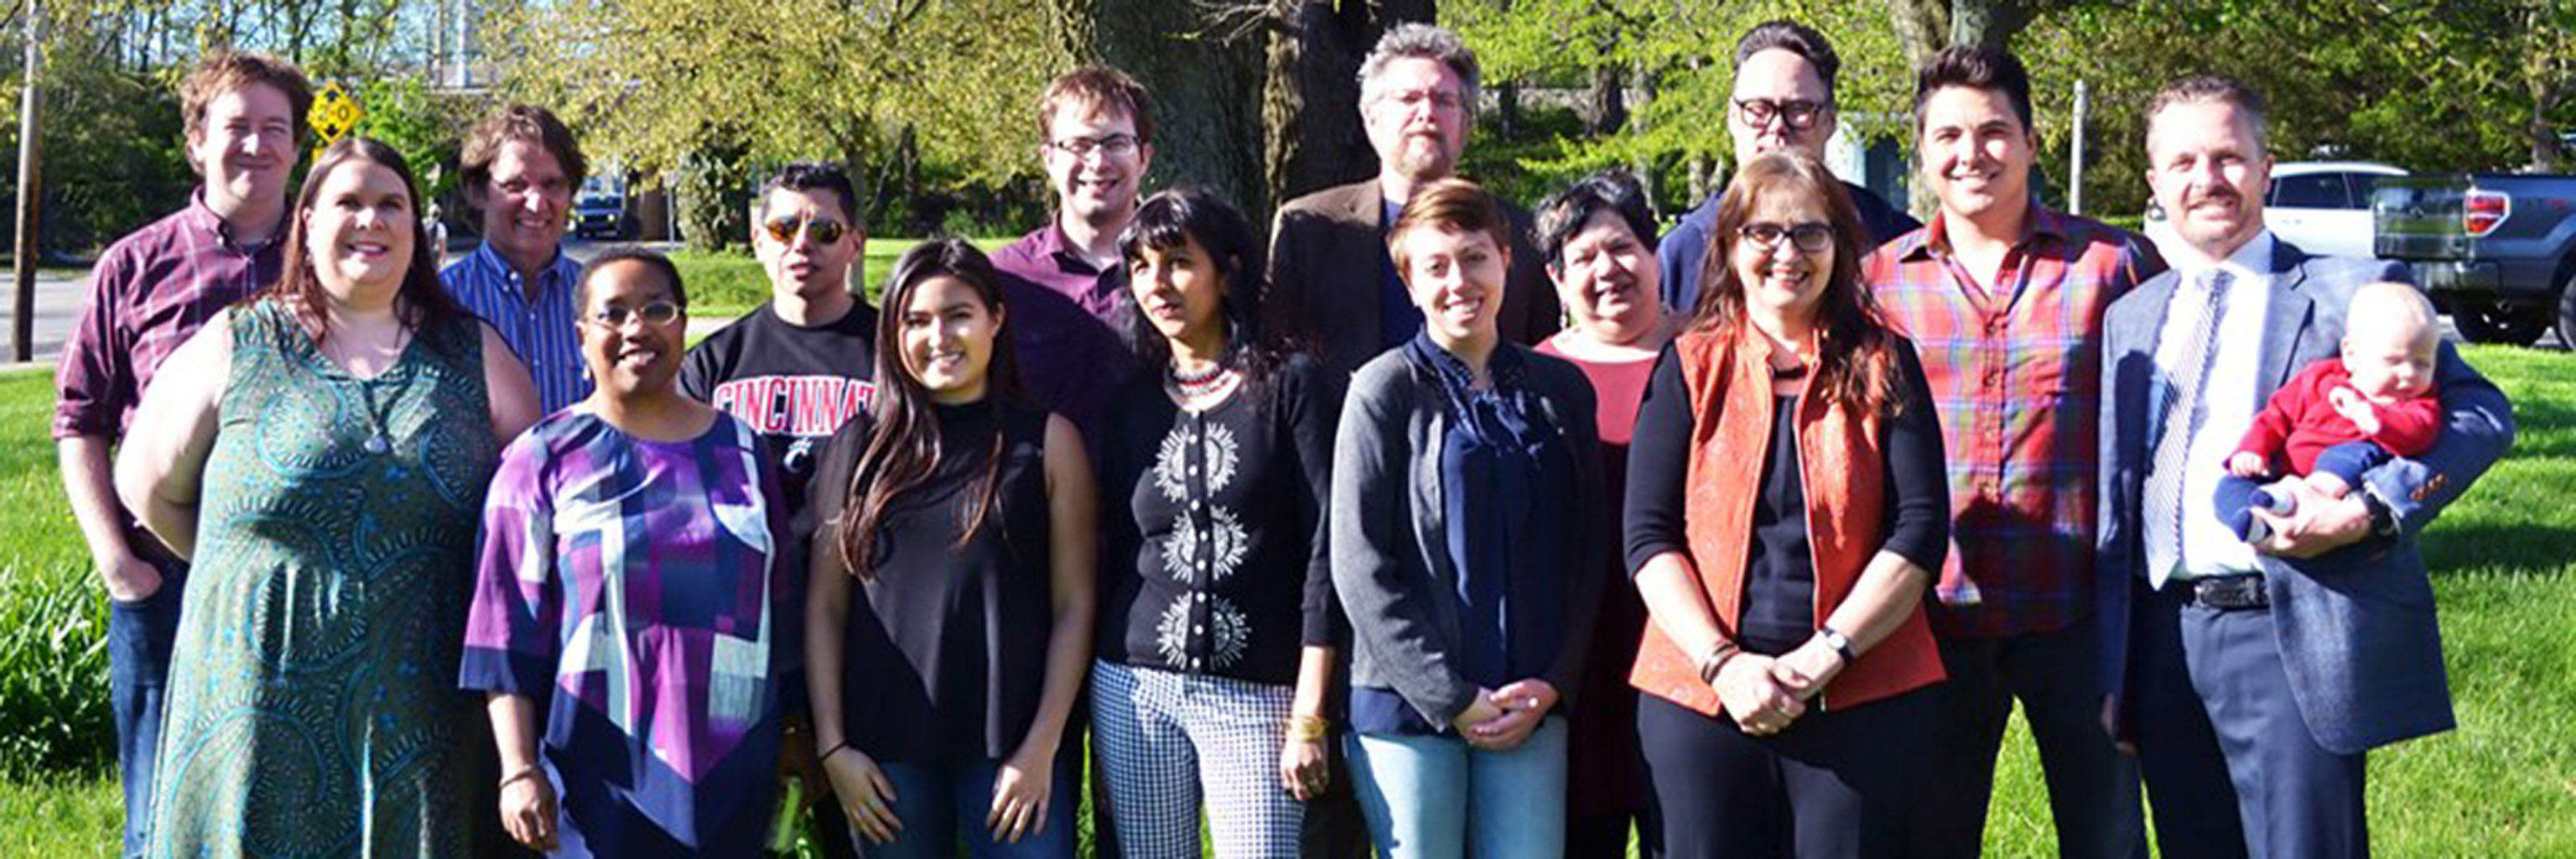 Image of the Department of Folklore and Ethnomusicology faculty and staff.